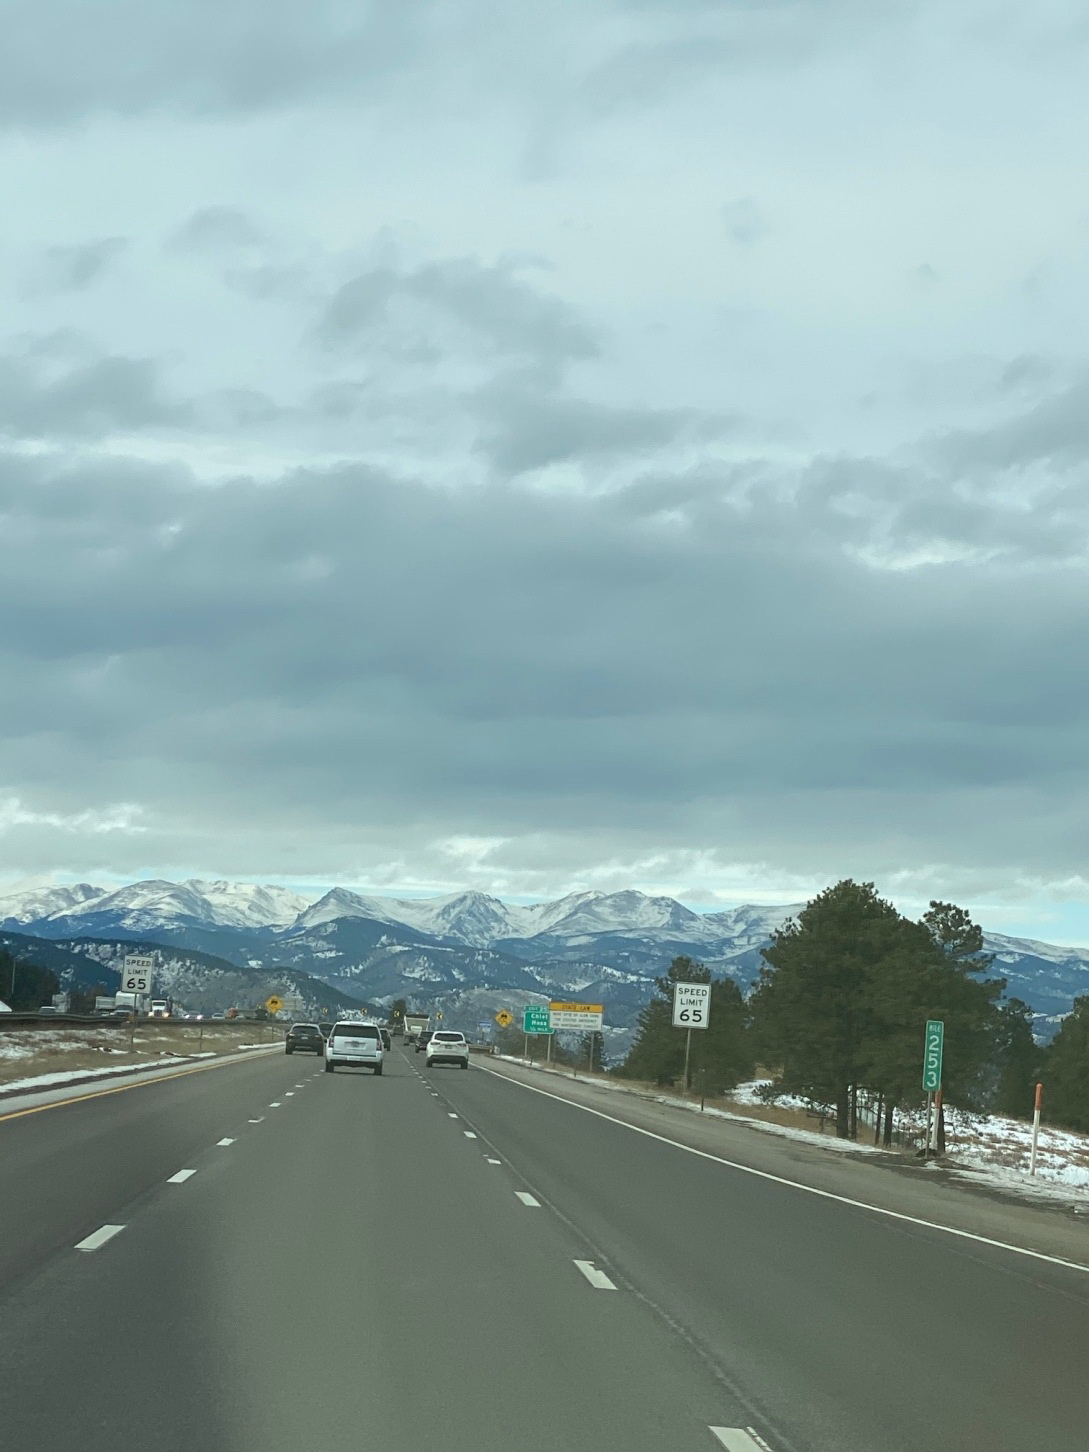 Art Shuttle Service from New York to Colorado